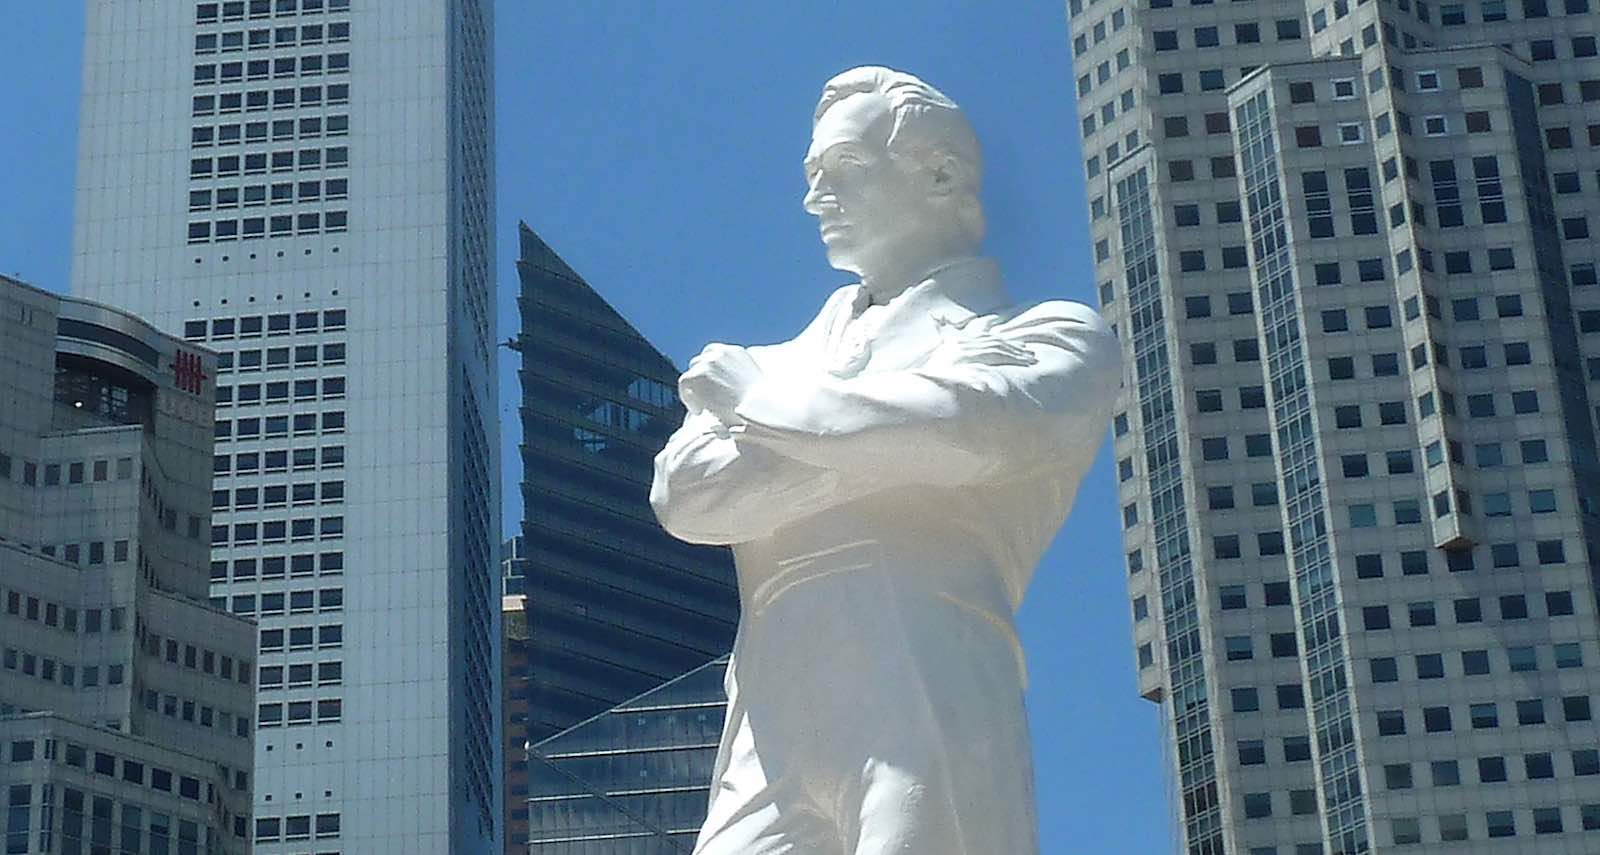 A statue of Sir Stamford Raffles marks the spot where he is believed to have first landed in 1819, on the north bank of the Singapore River (Photo: Jim Dyson/Getty Images)